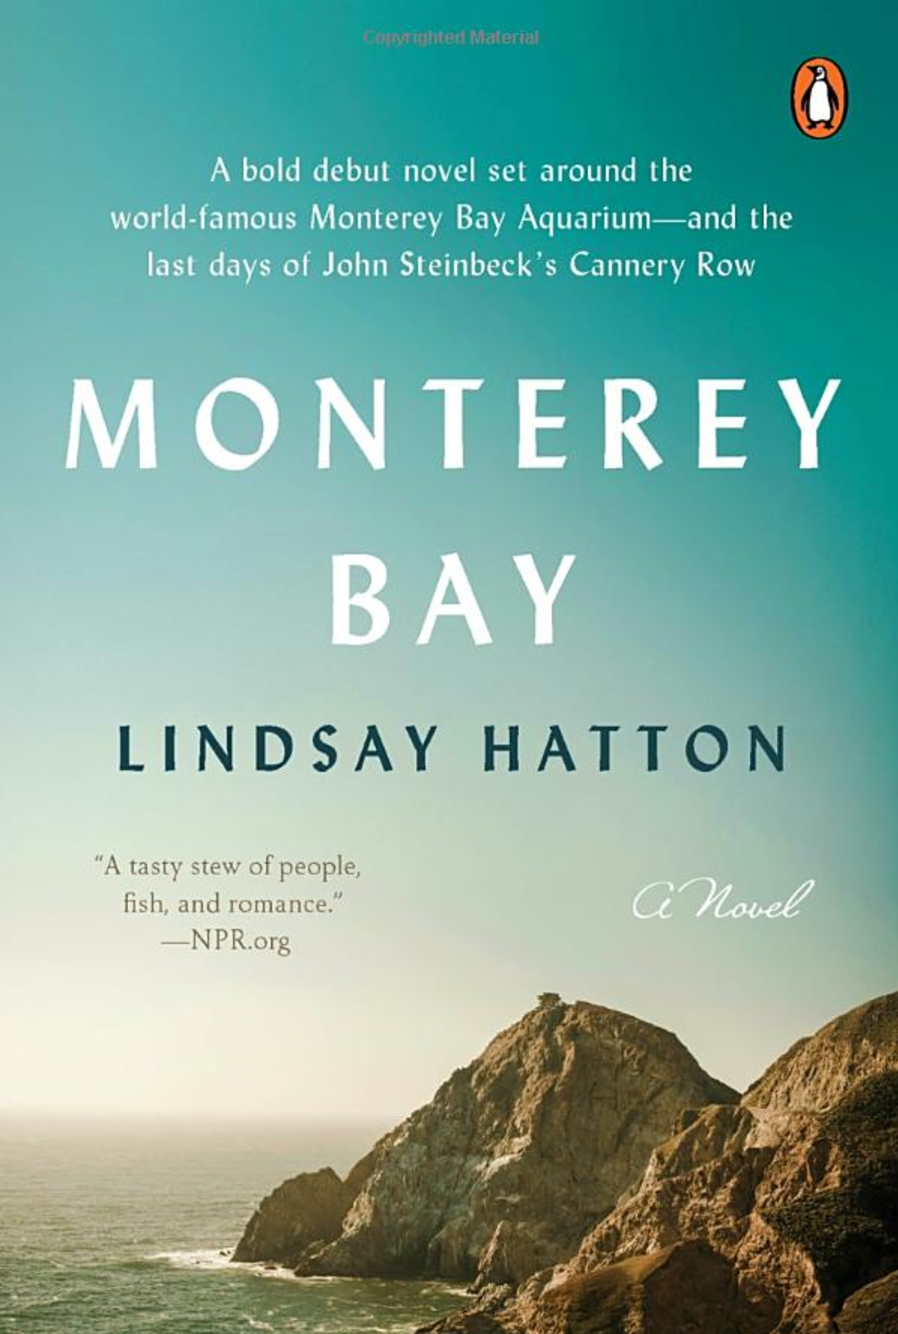 Monterey Bay (Penguin Press, 2016)